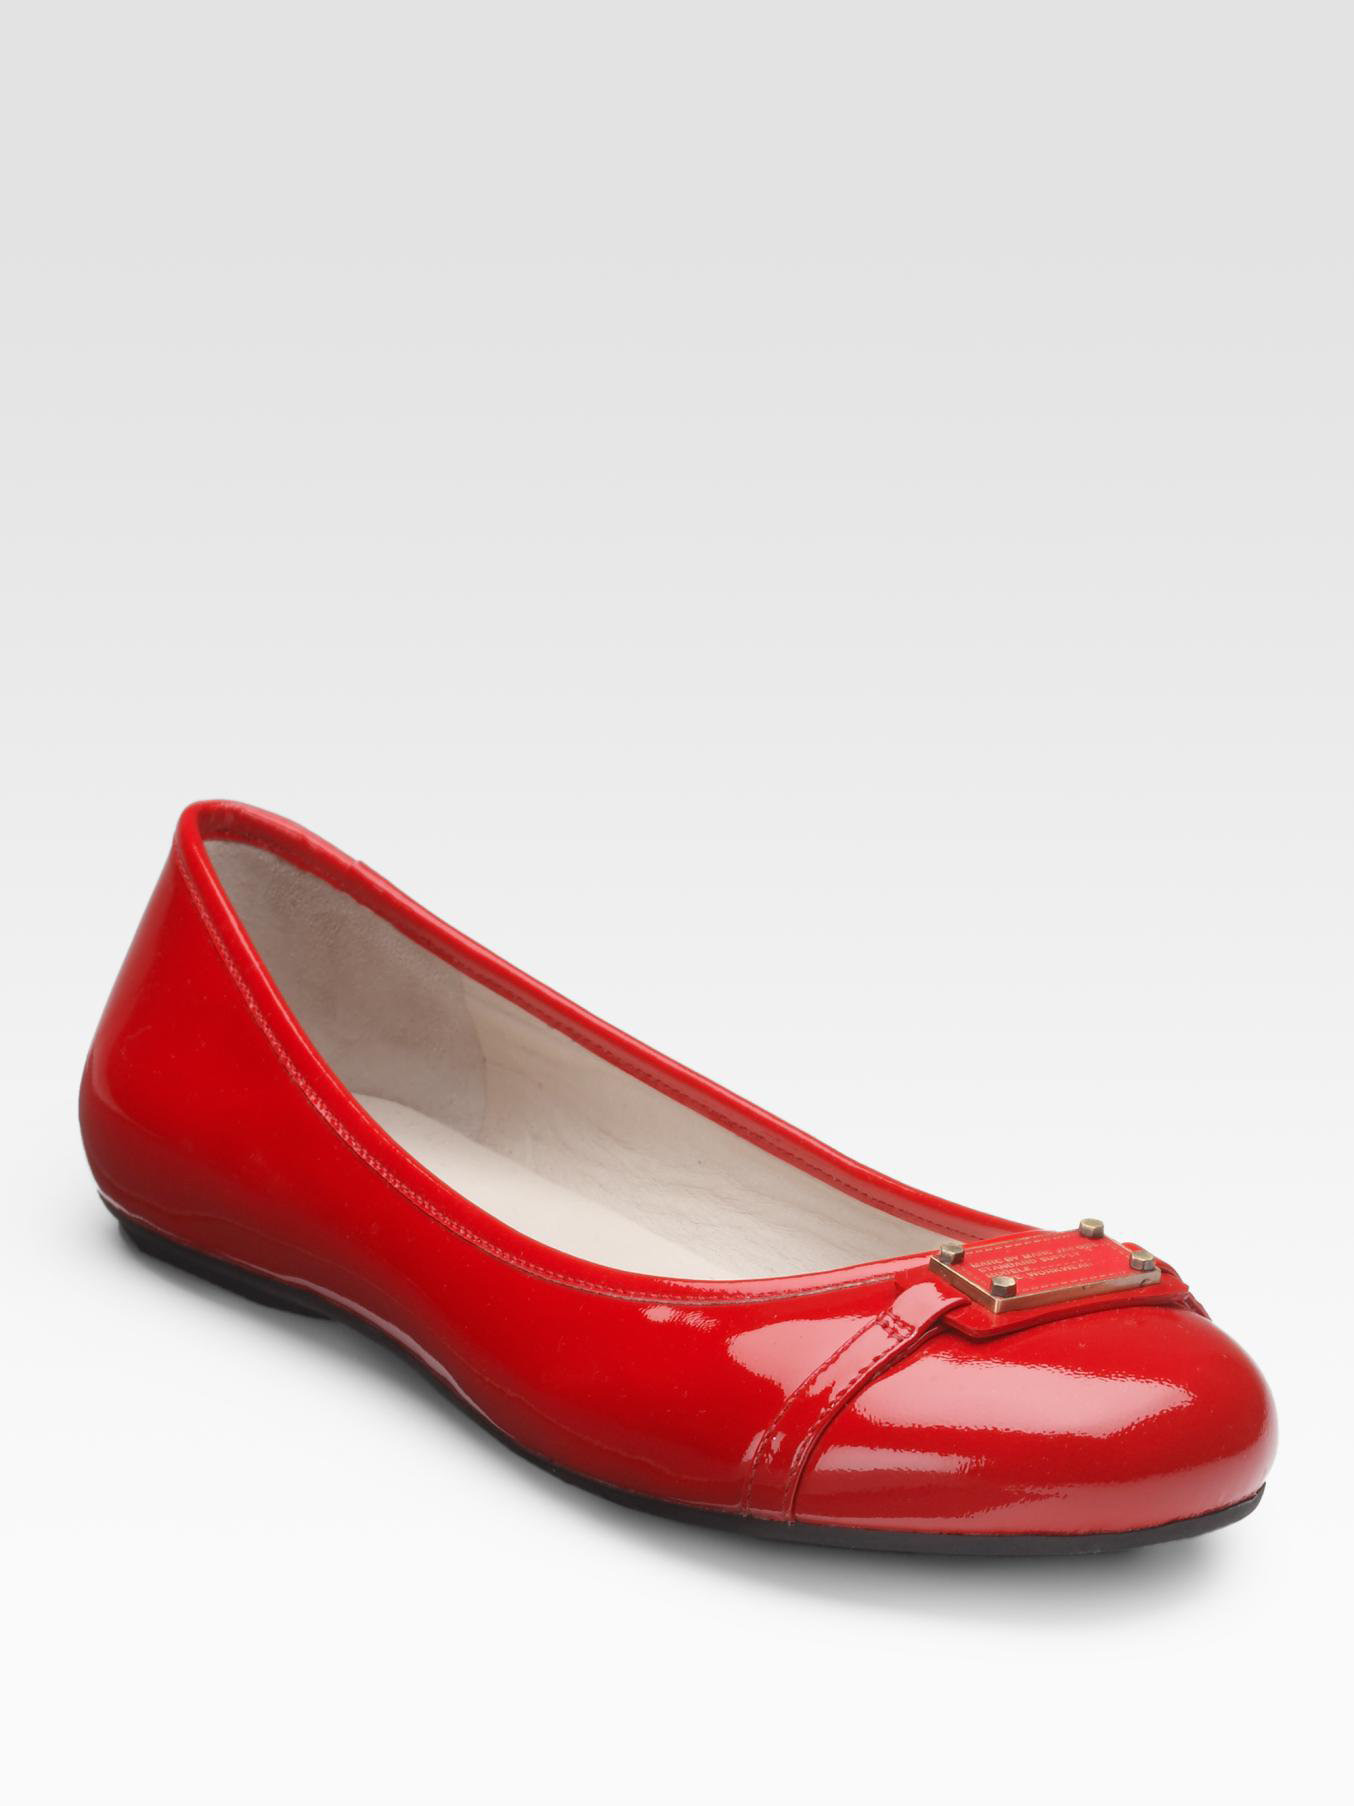 Womens Red Patent Leather Shoes